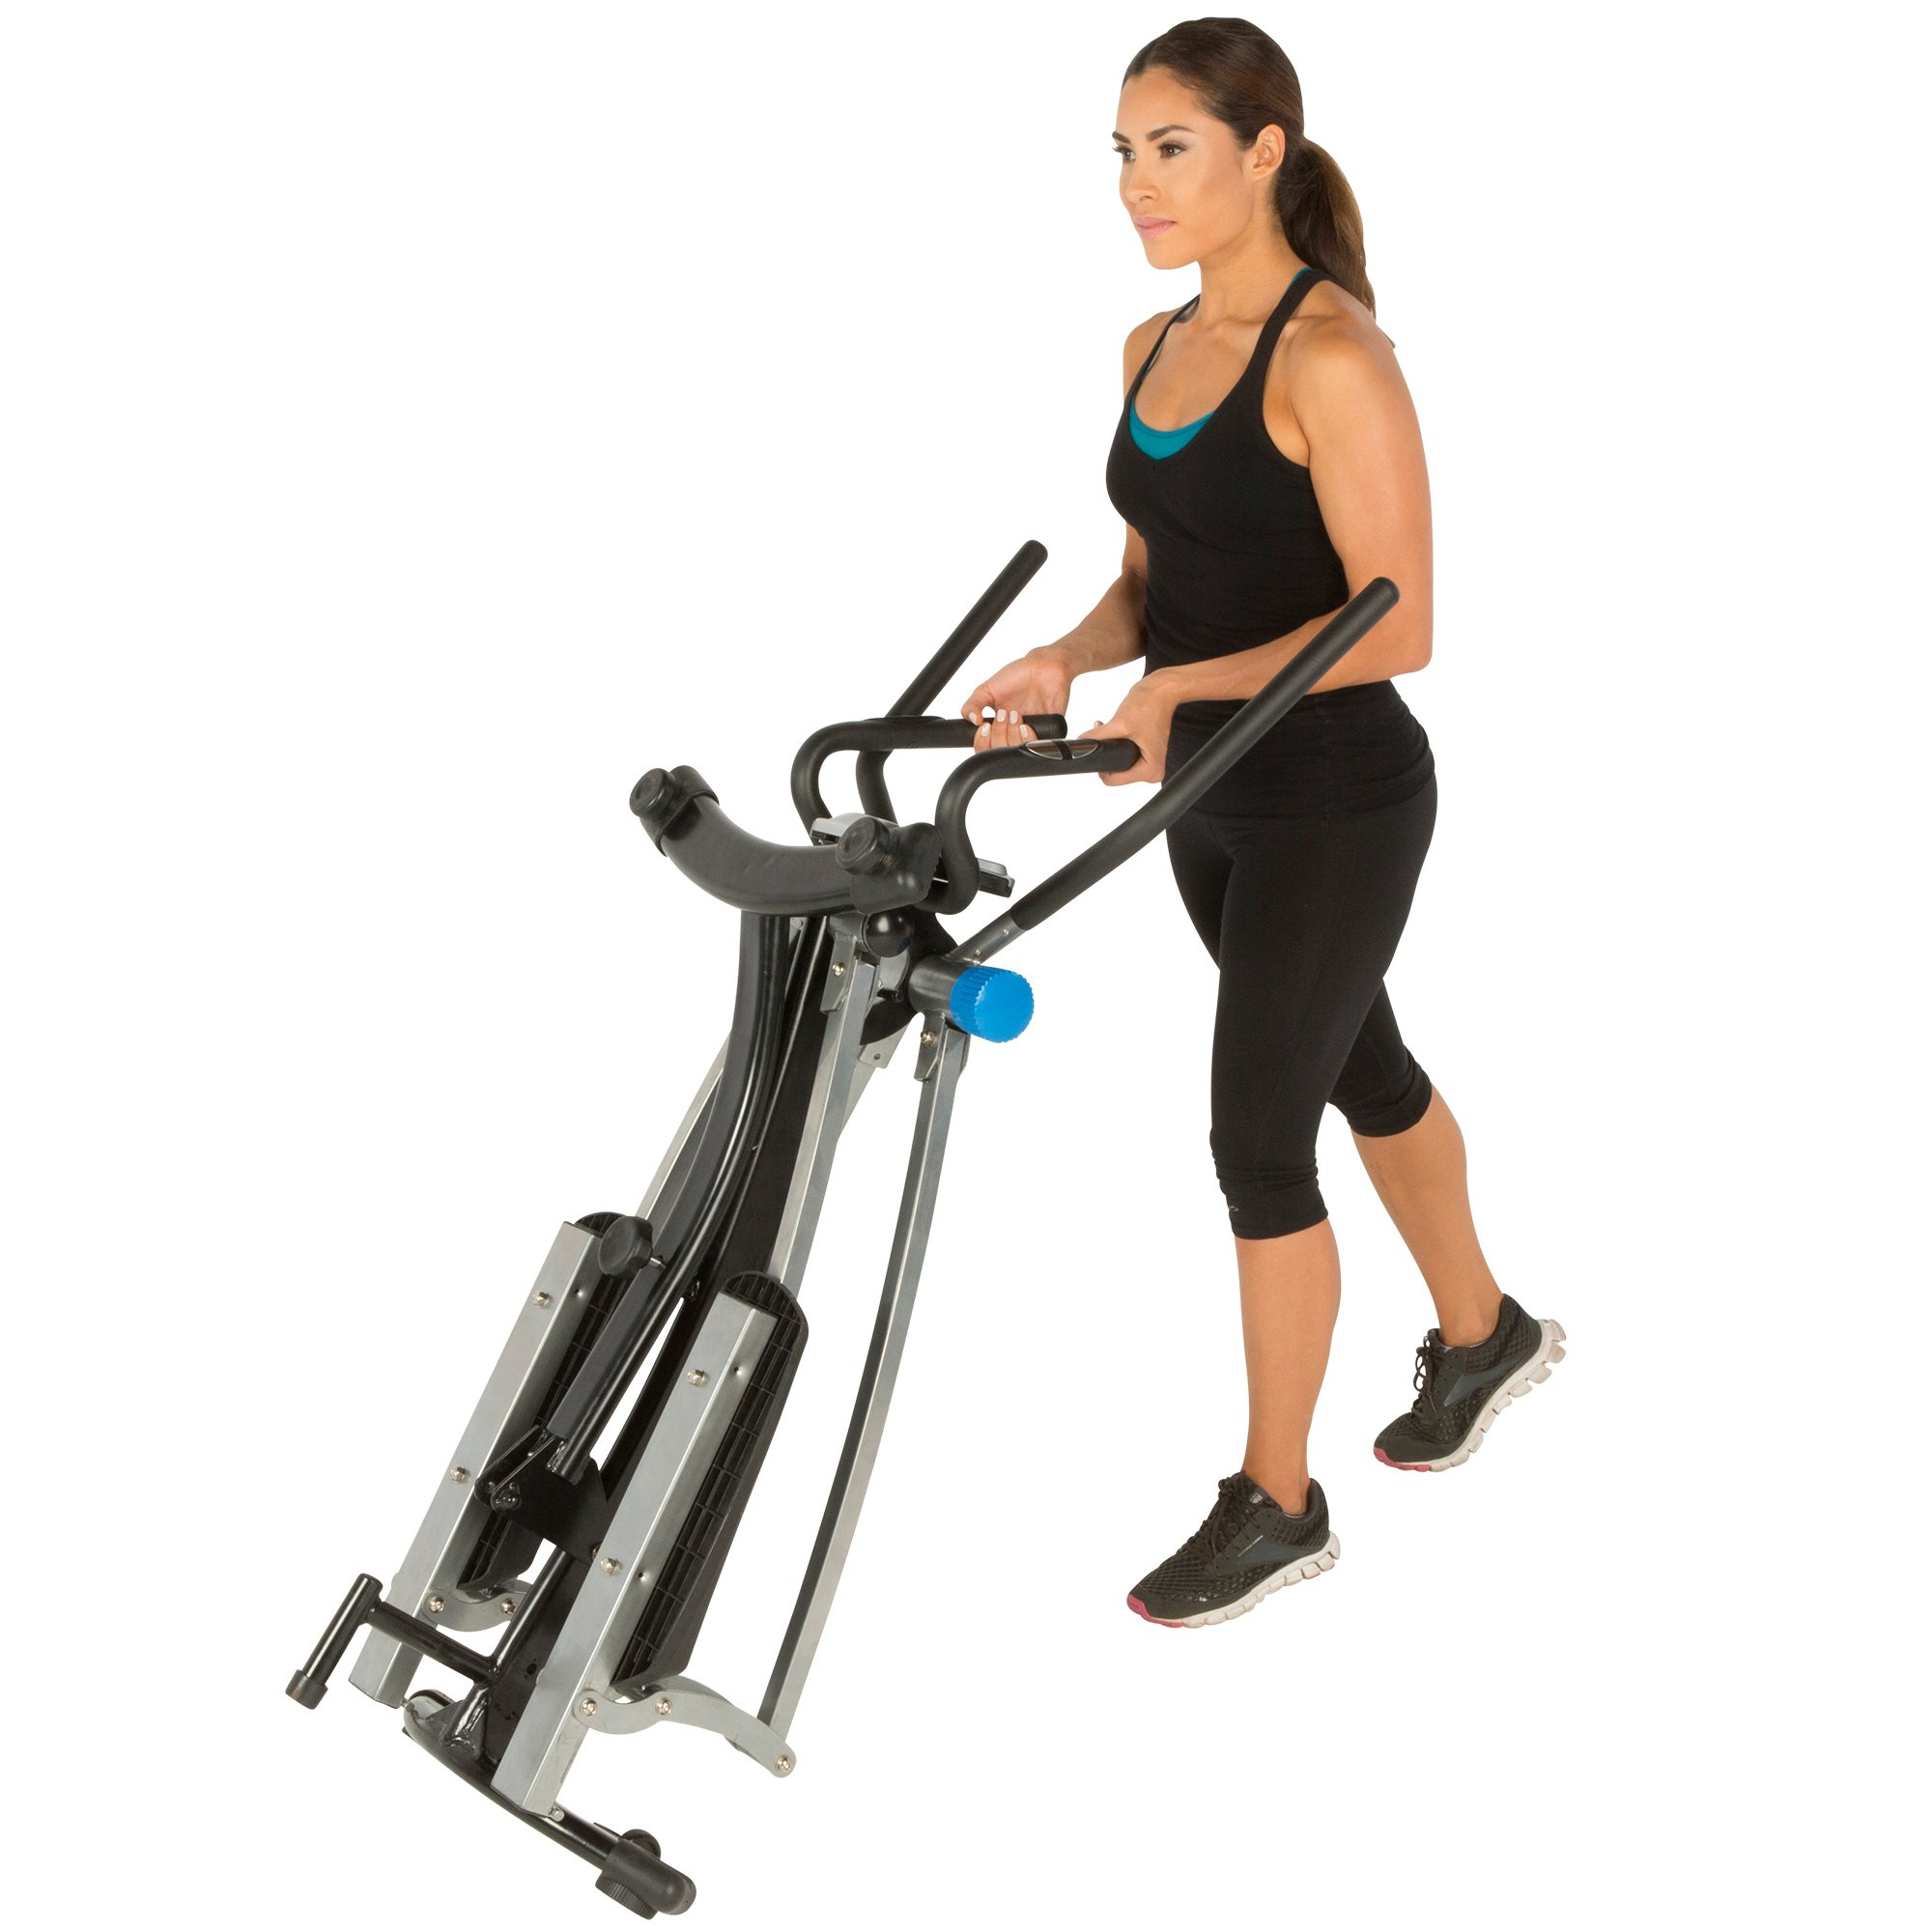 PROGEAR Dual Action 360 Multi Direction 36'' Stride Air Walker LS with Heart Pulse Sensors by ProGear (Image #7)